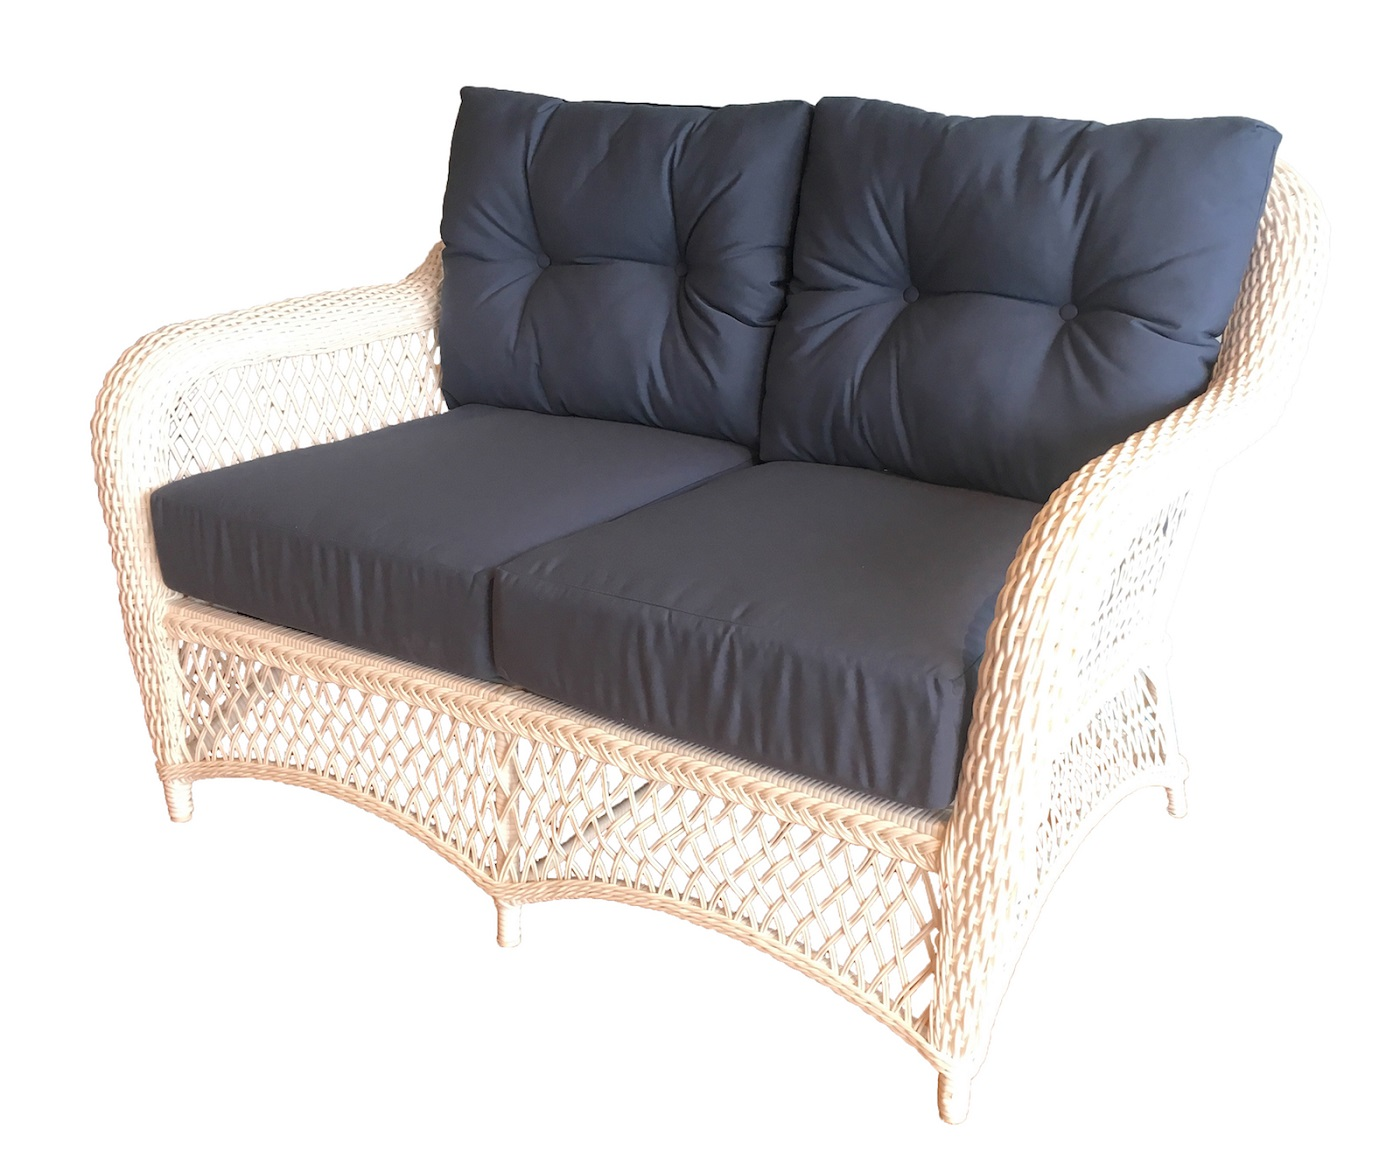 loveseat master miami resin hayneedle product wicker siesta cfm